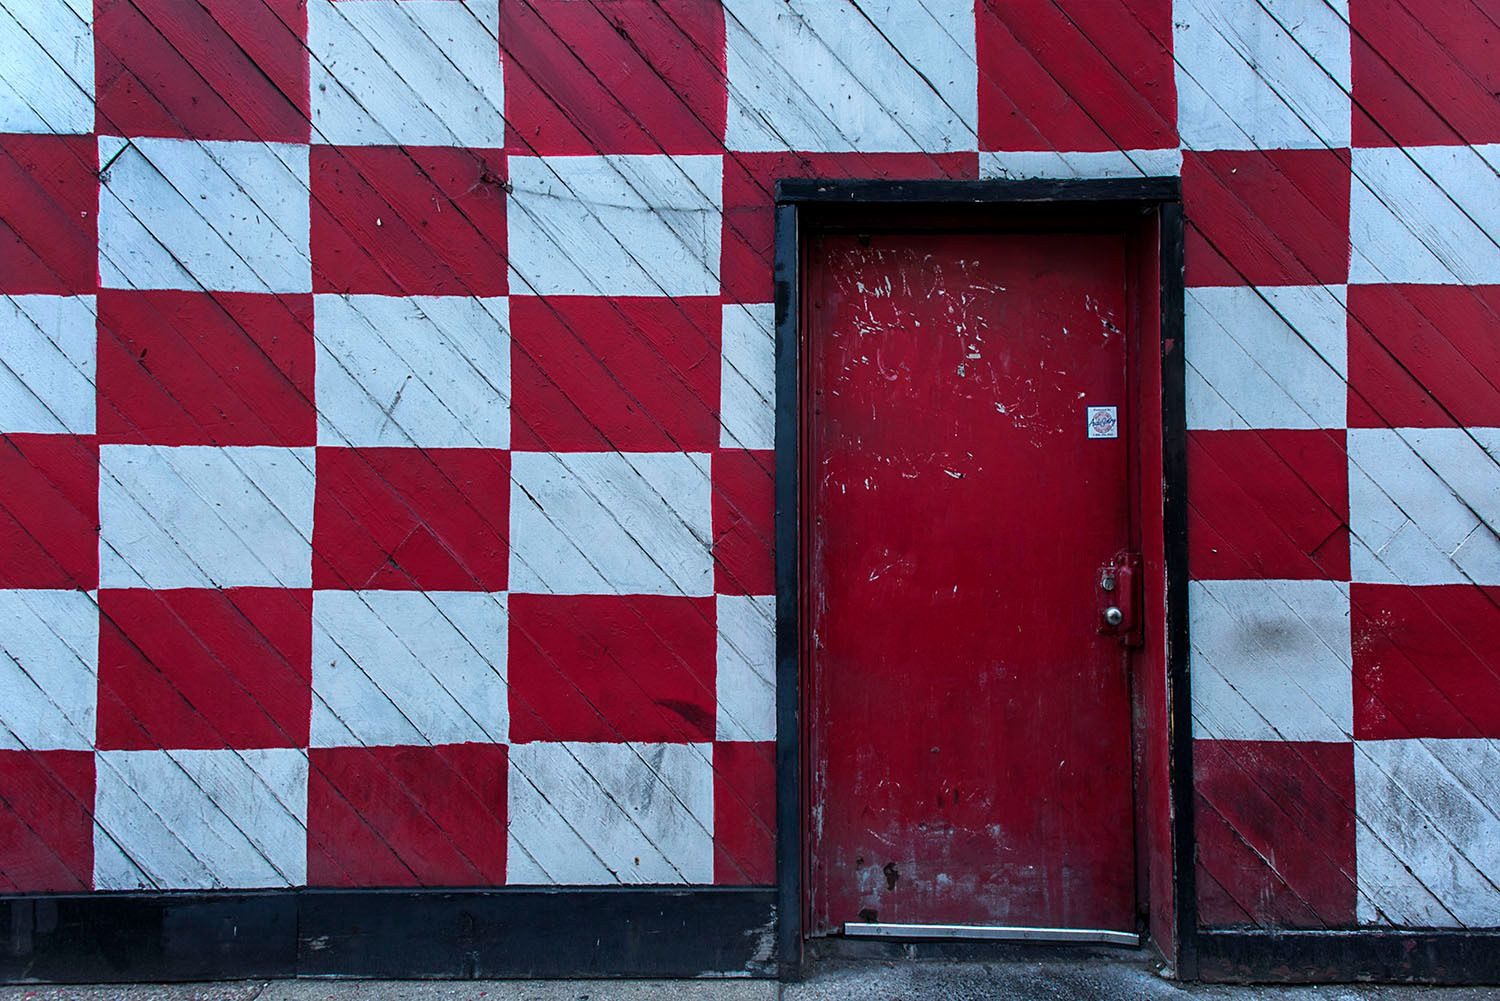 Red, white and black wall. Detroit, Michigan